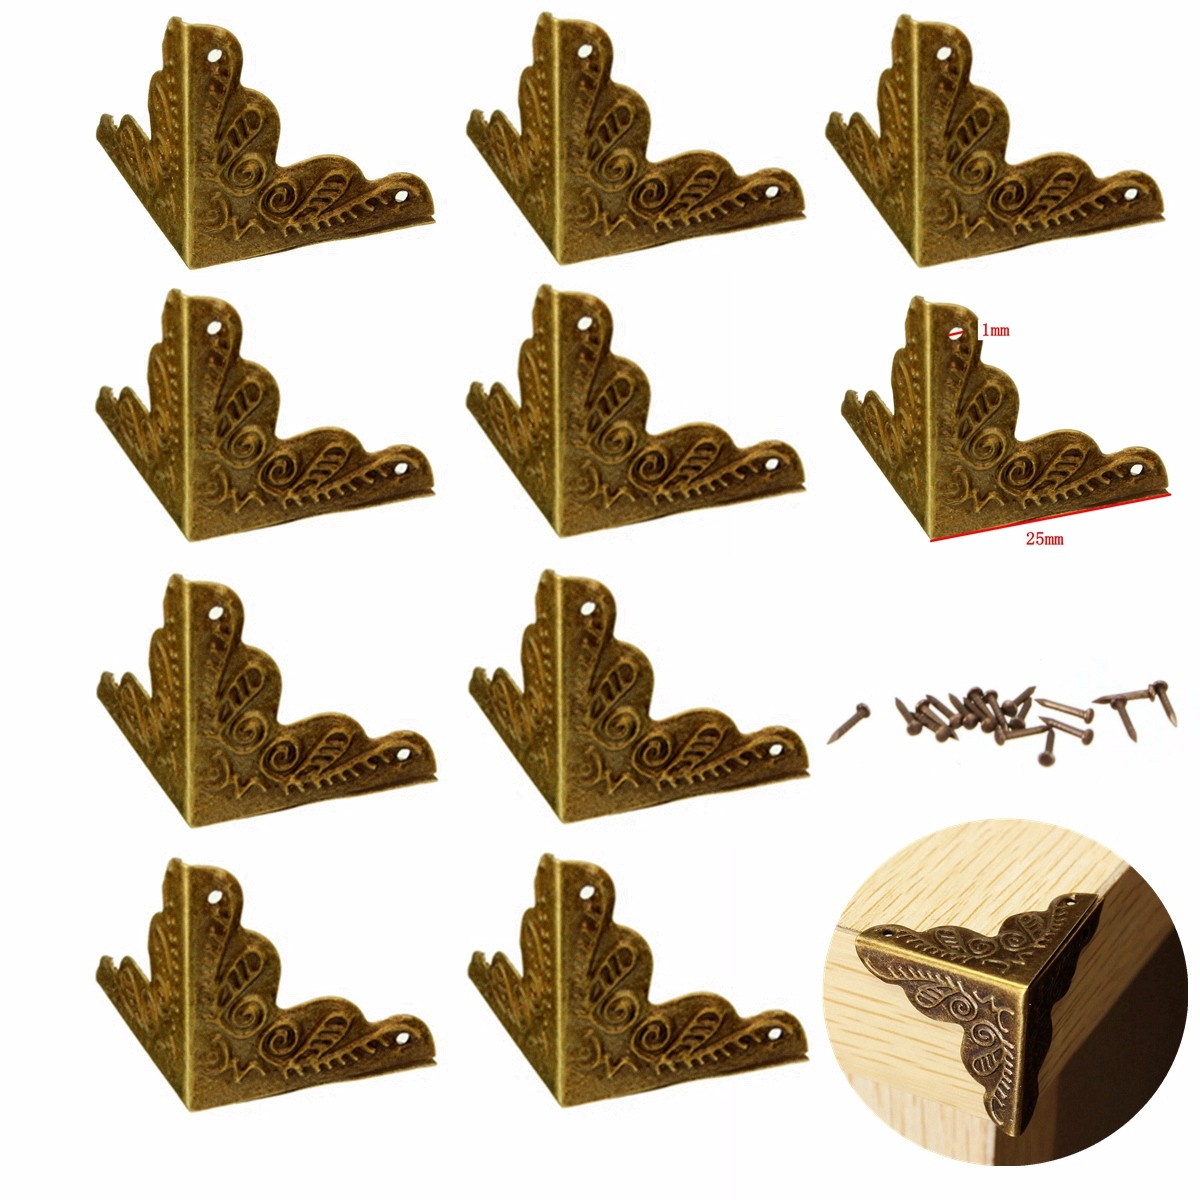 MTGATHER 10Pcs Antique Jewelry Box Corner Foot Wooden Case Corner Protector Tone Flower Pattern Carved Metal Crafts Bronze